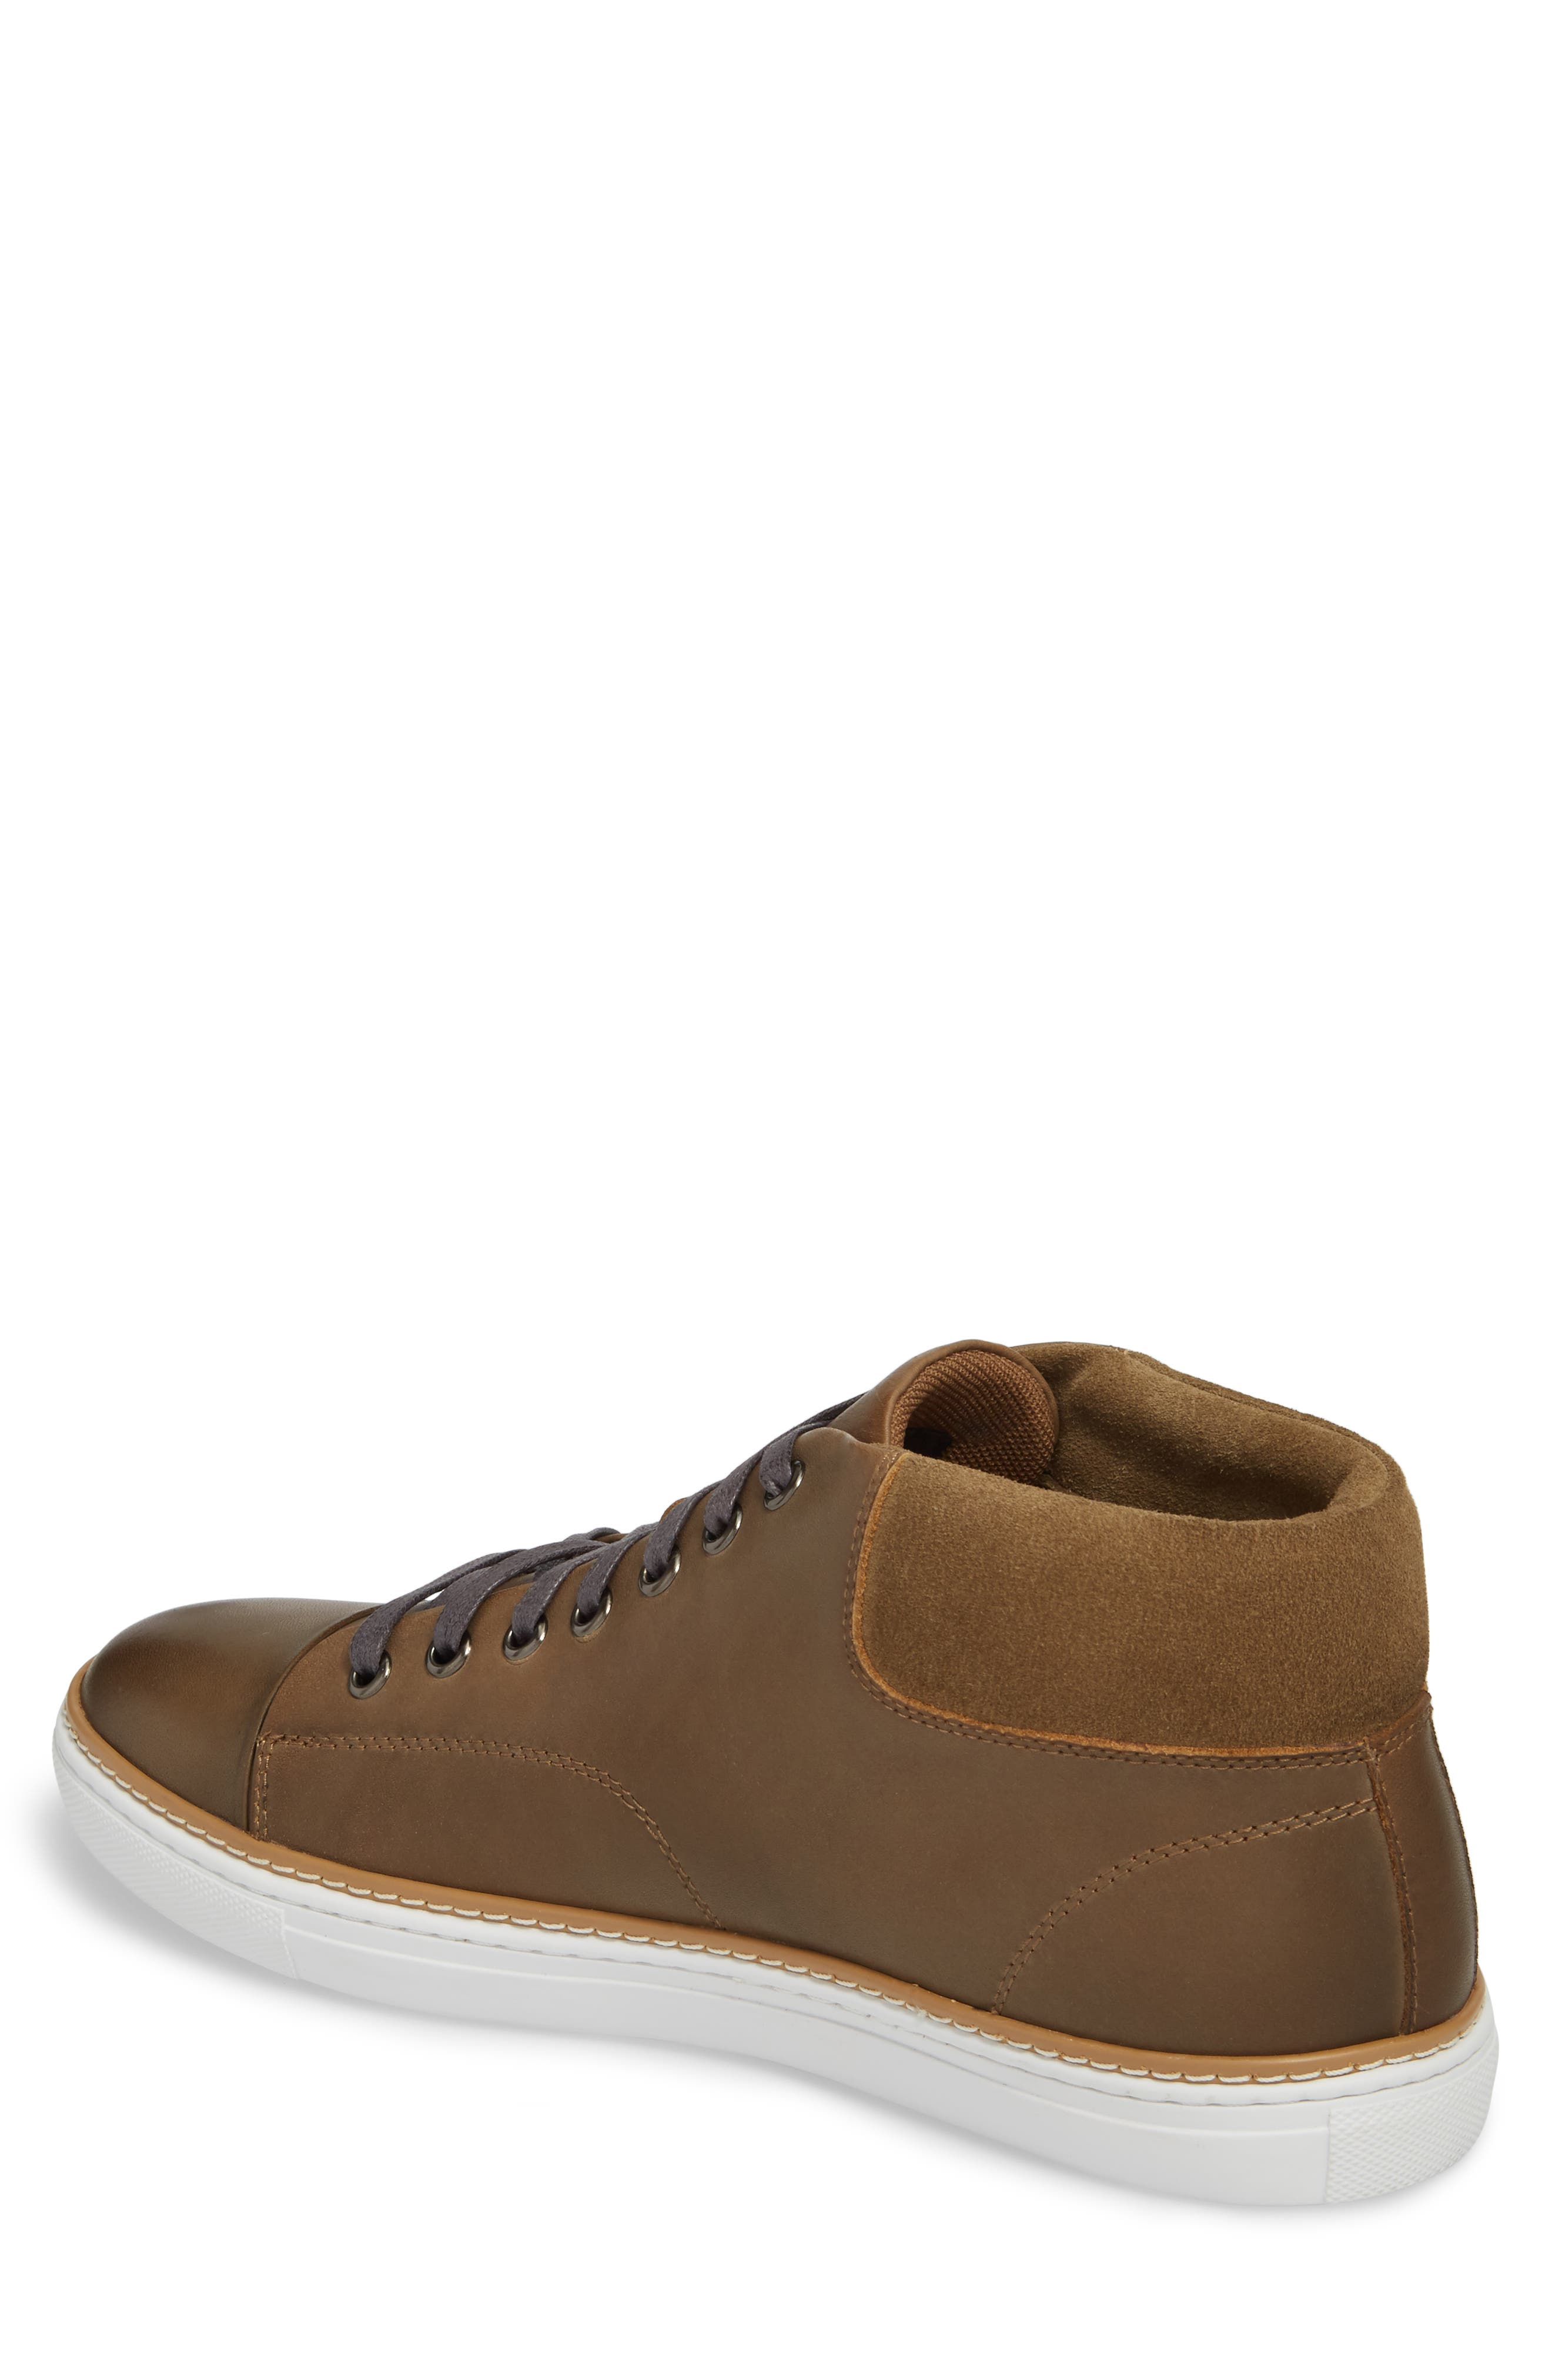 Grove Sneaker,                             Alternate thumbnail 2, color,                             Tan Leather